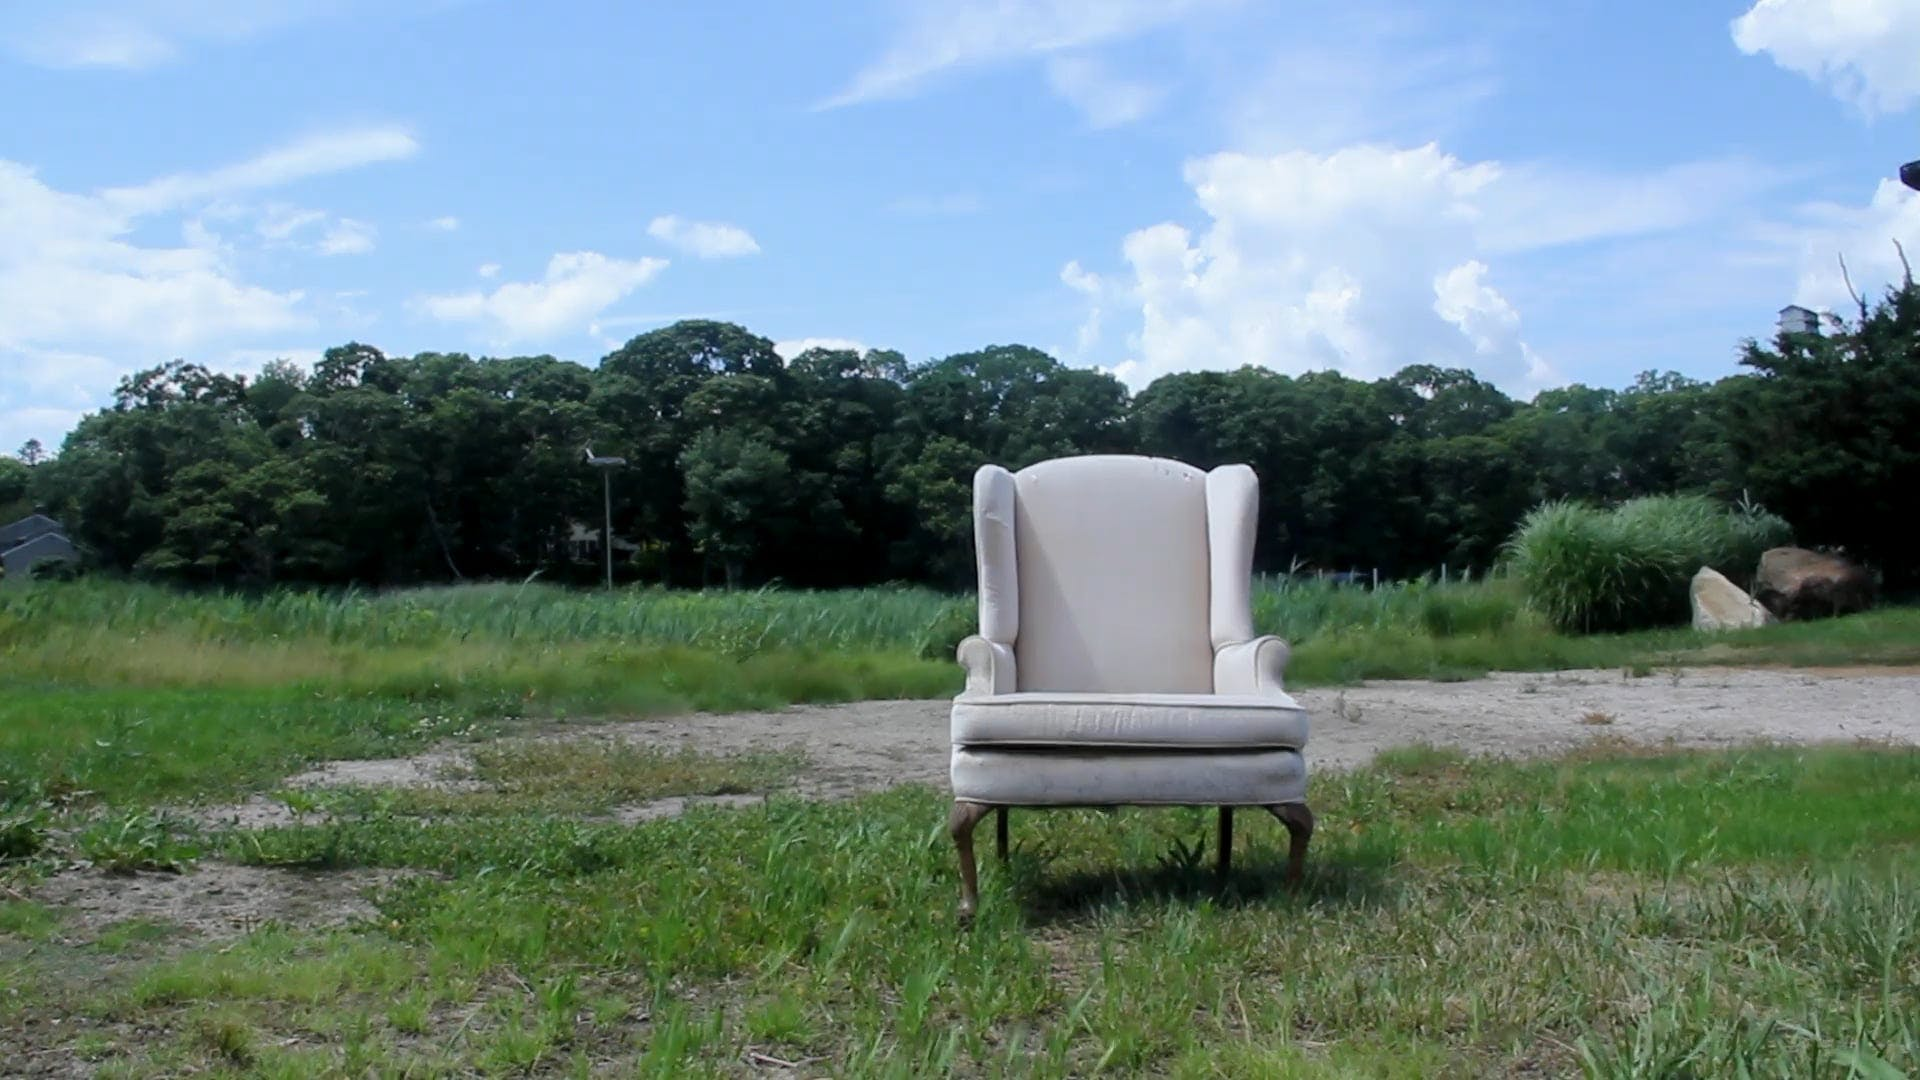 Chair In the Middle of an Open Field